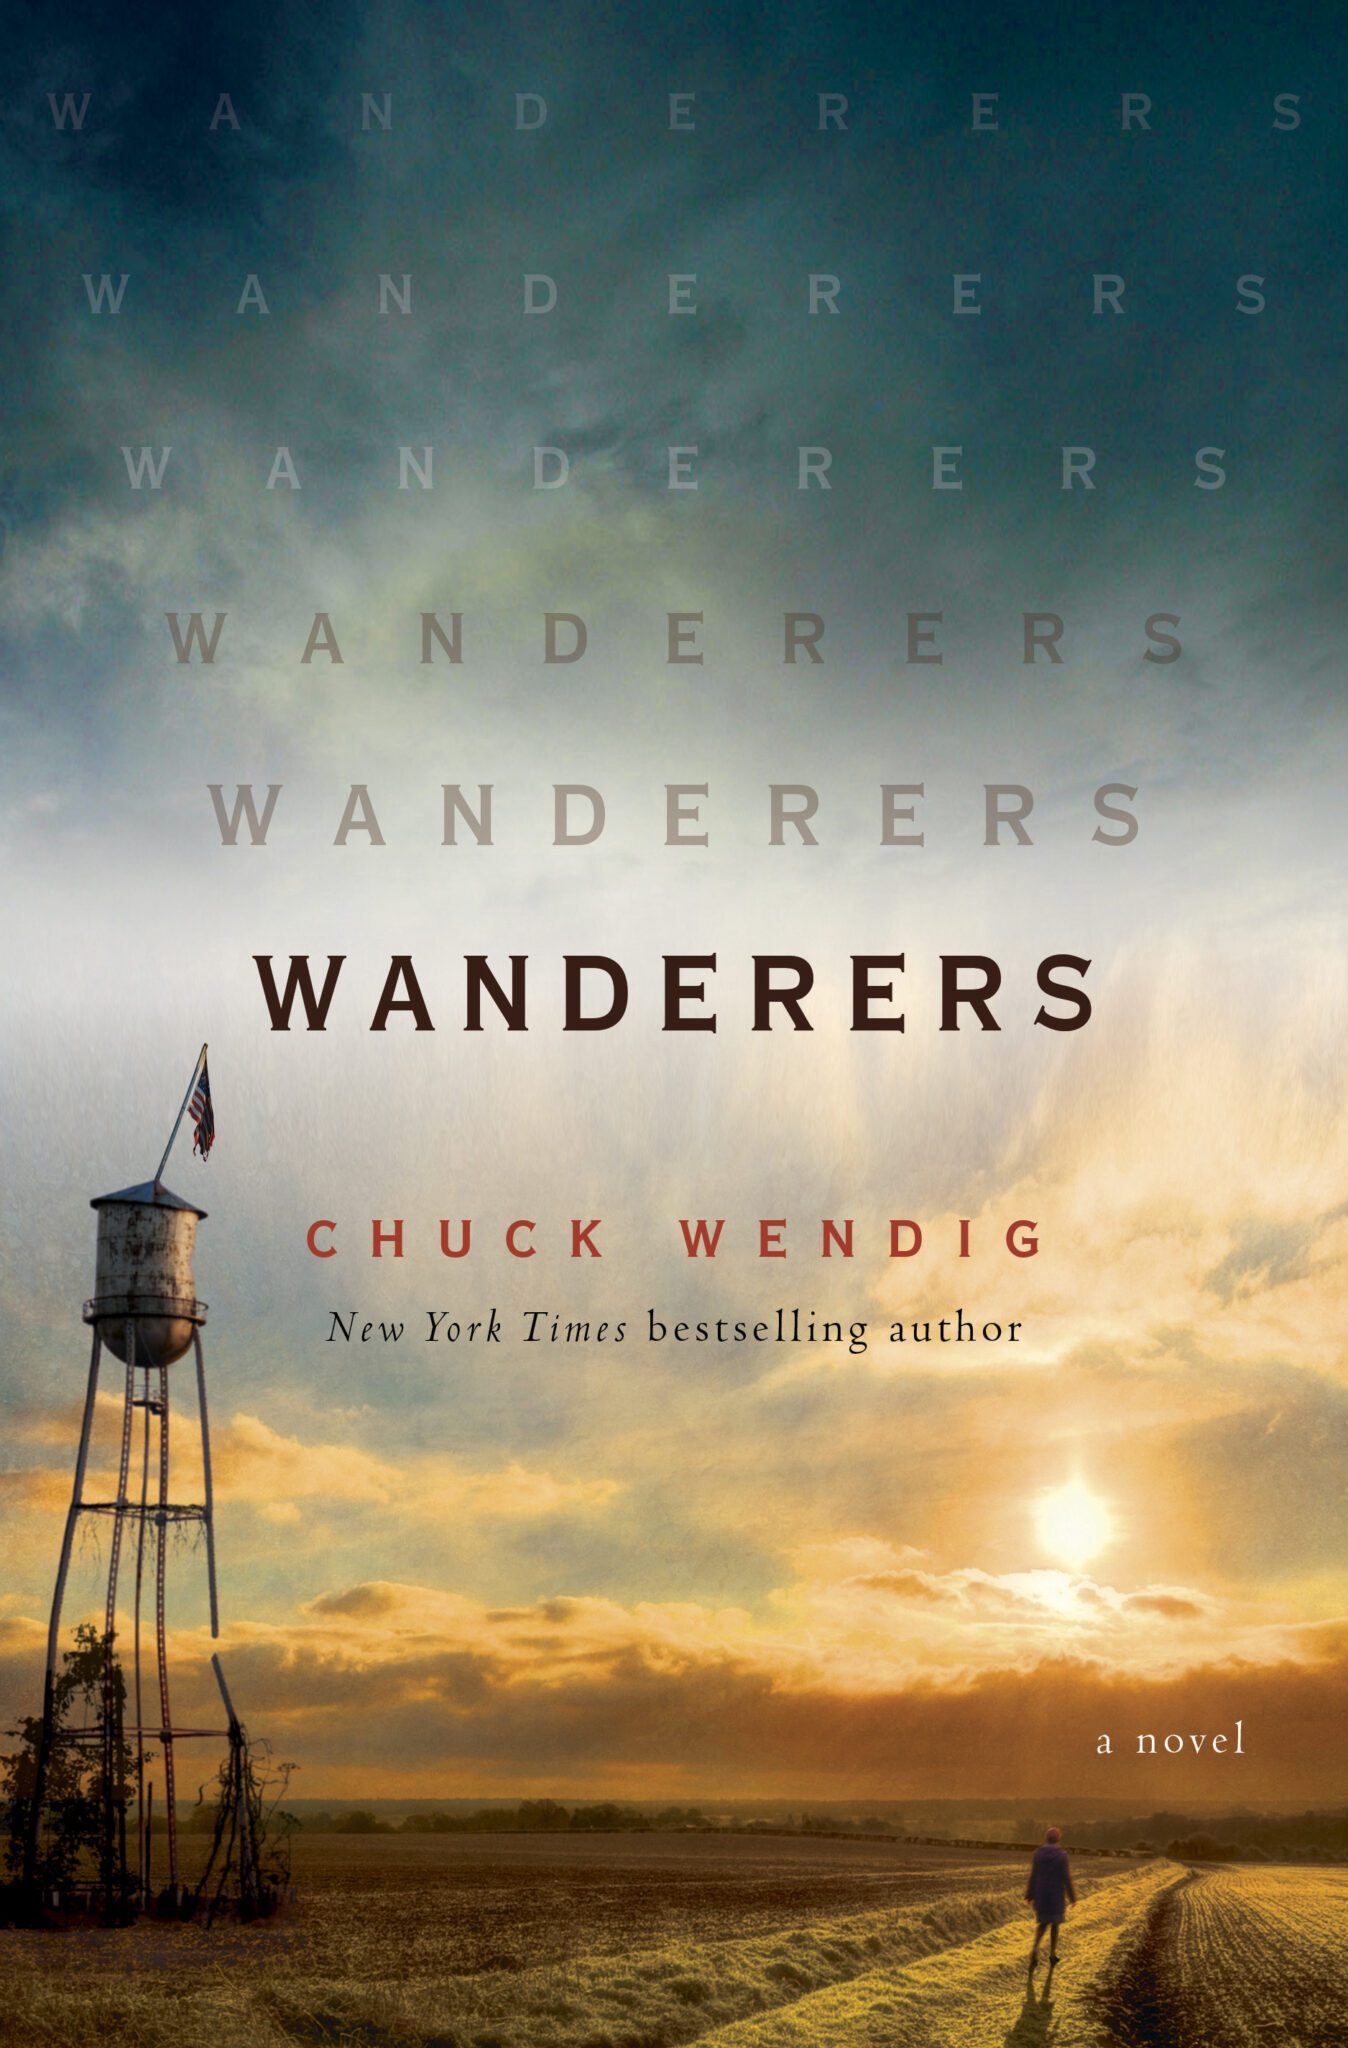 Five Things I Learned Writing Wanderers